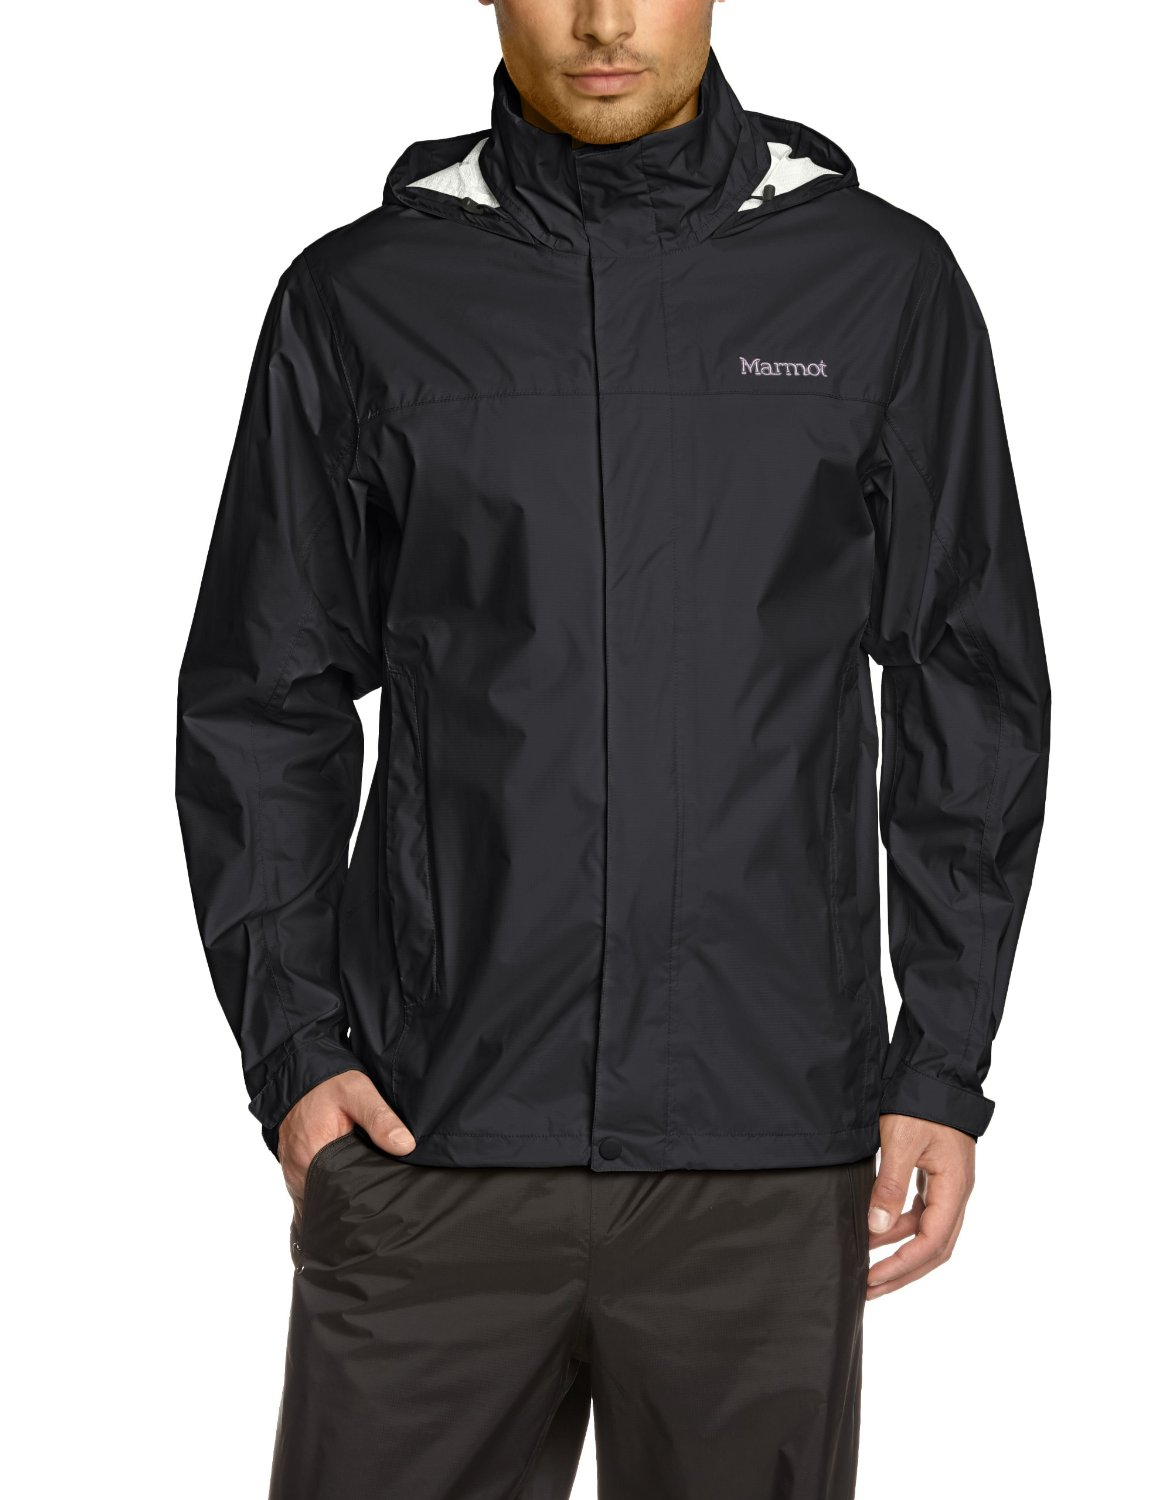 Marmot Mens Precip Jacket